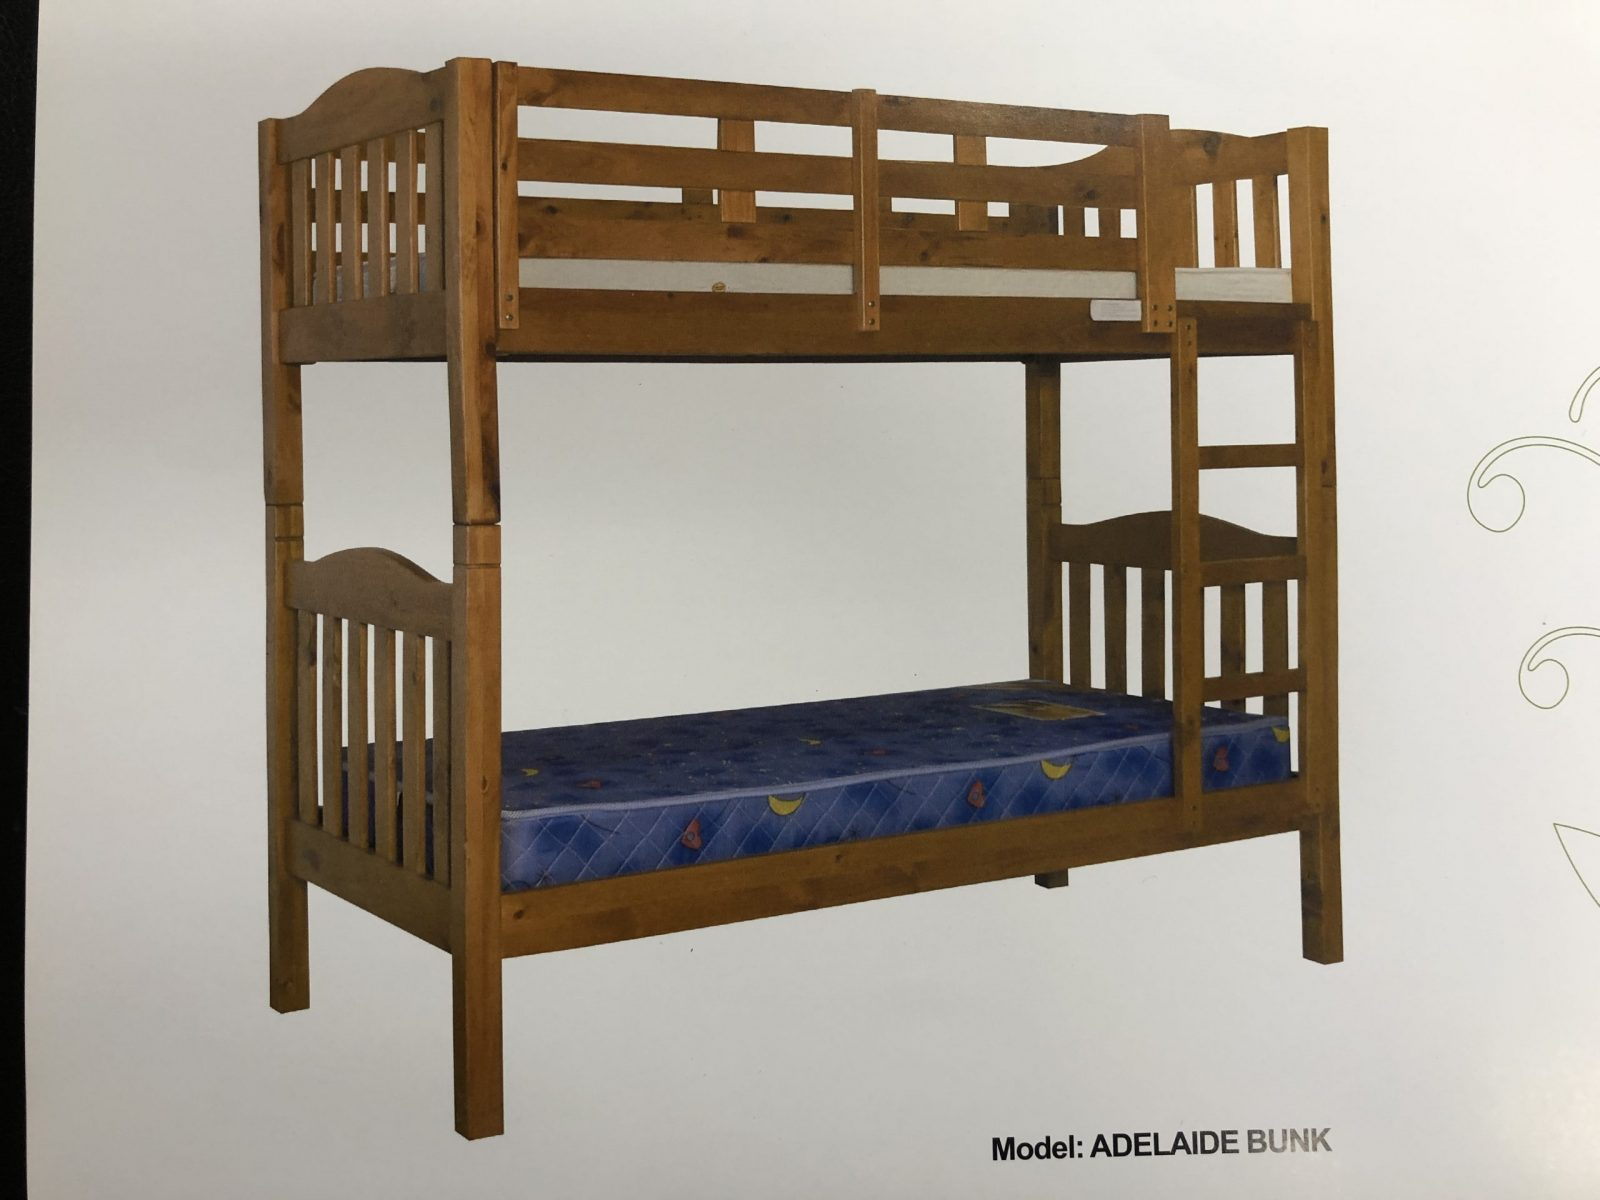 Adelaide Bunk Bed